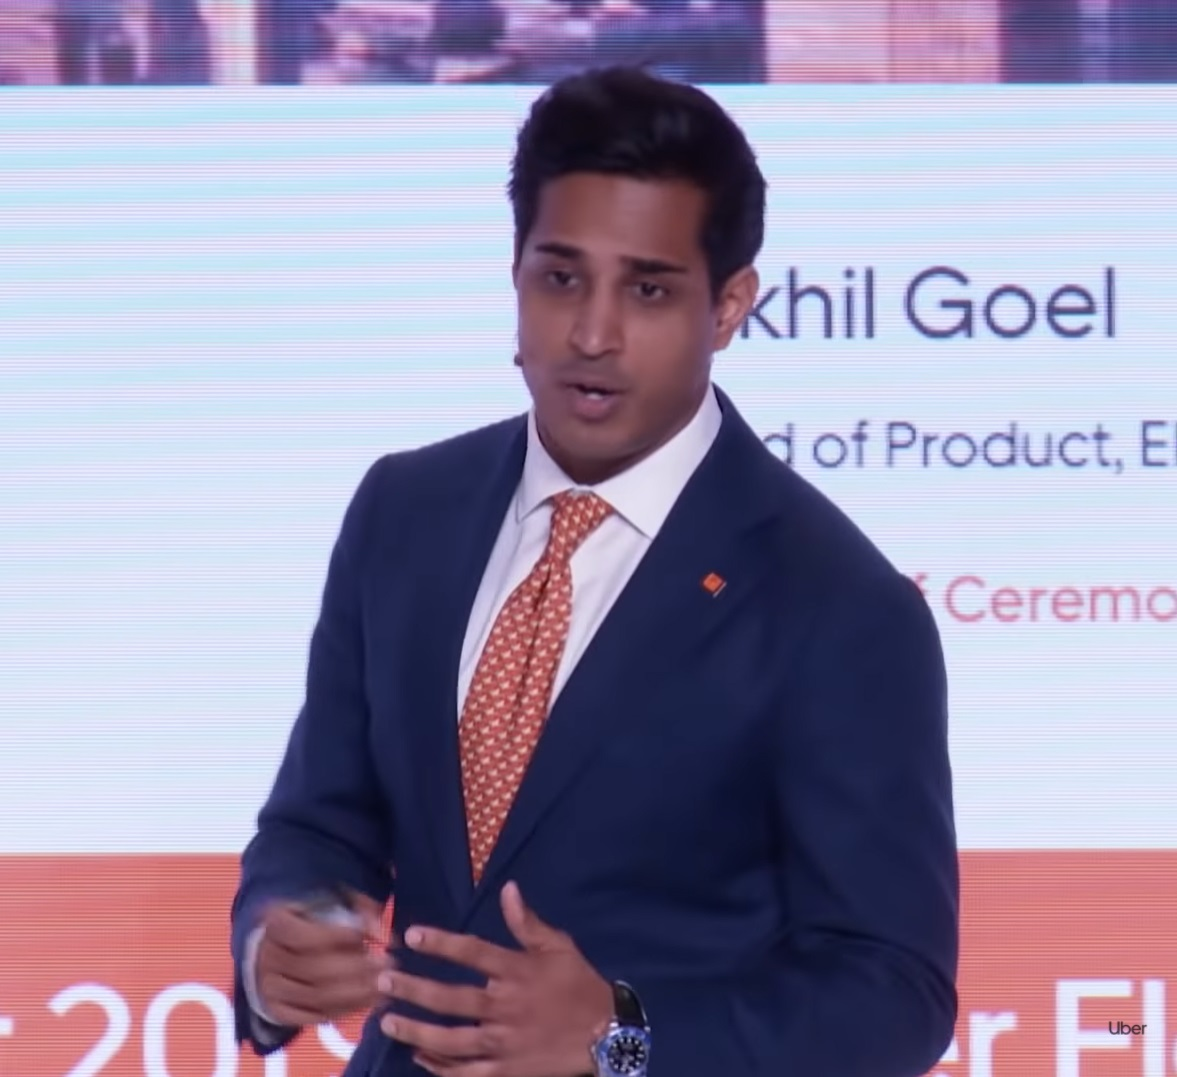 Nikhil Goel - co-founder Uber Elevate